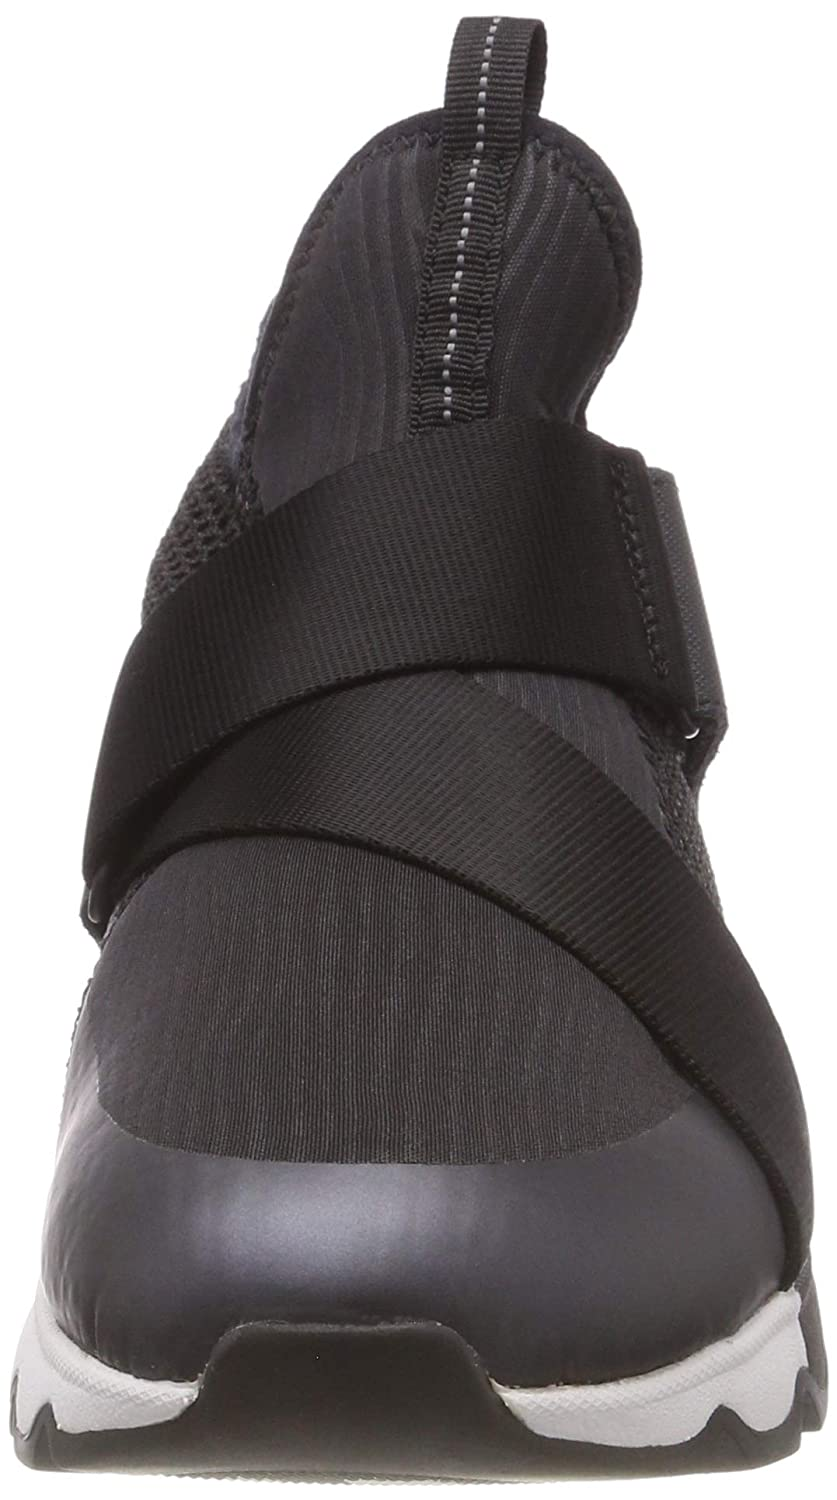 Sorel Damen Sneak Kinetic Sneak Damen Sneaker 5c5718